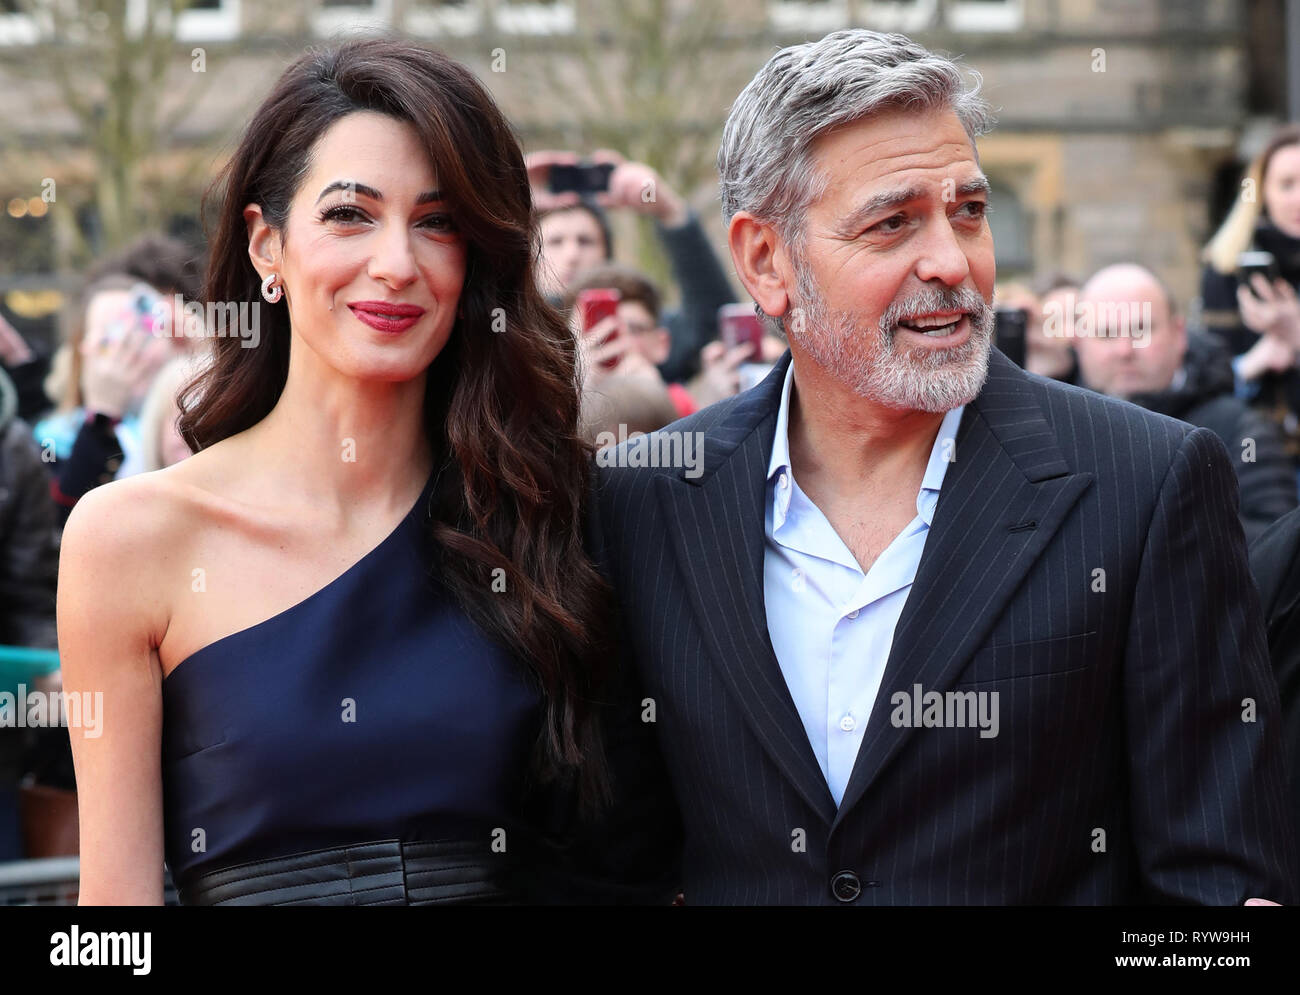 George and Amal Clooney, representing the Clooney Foundation